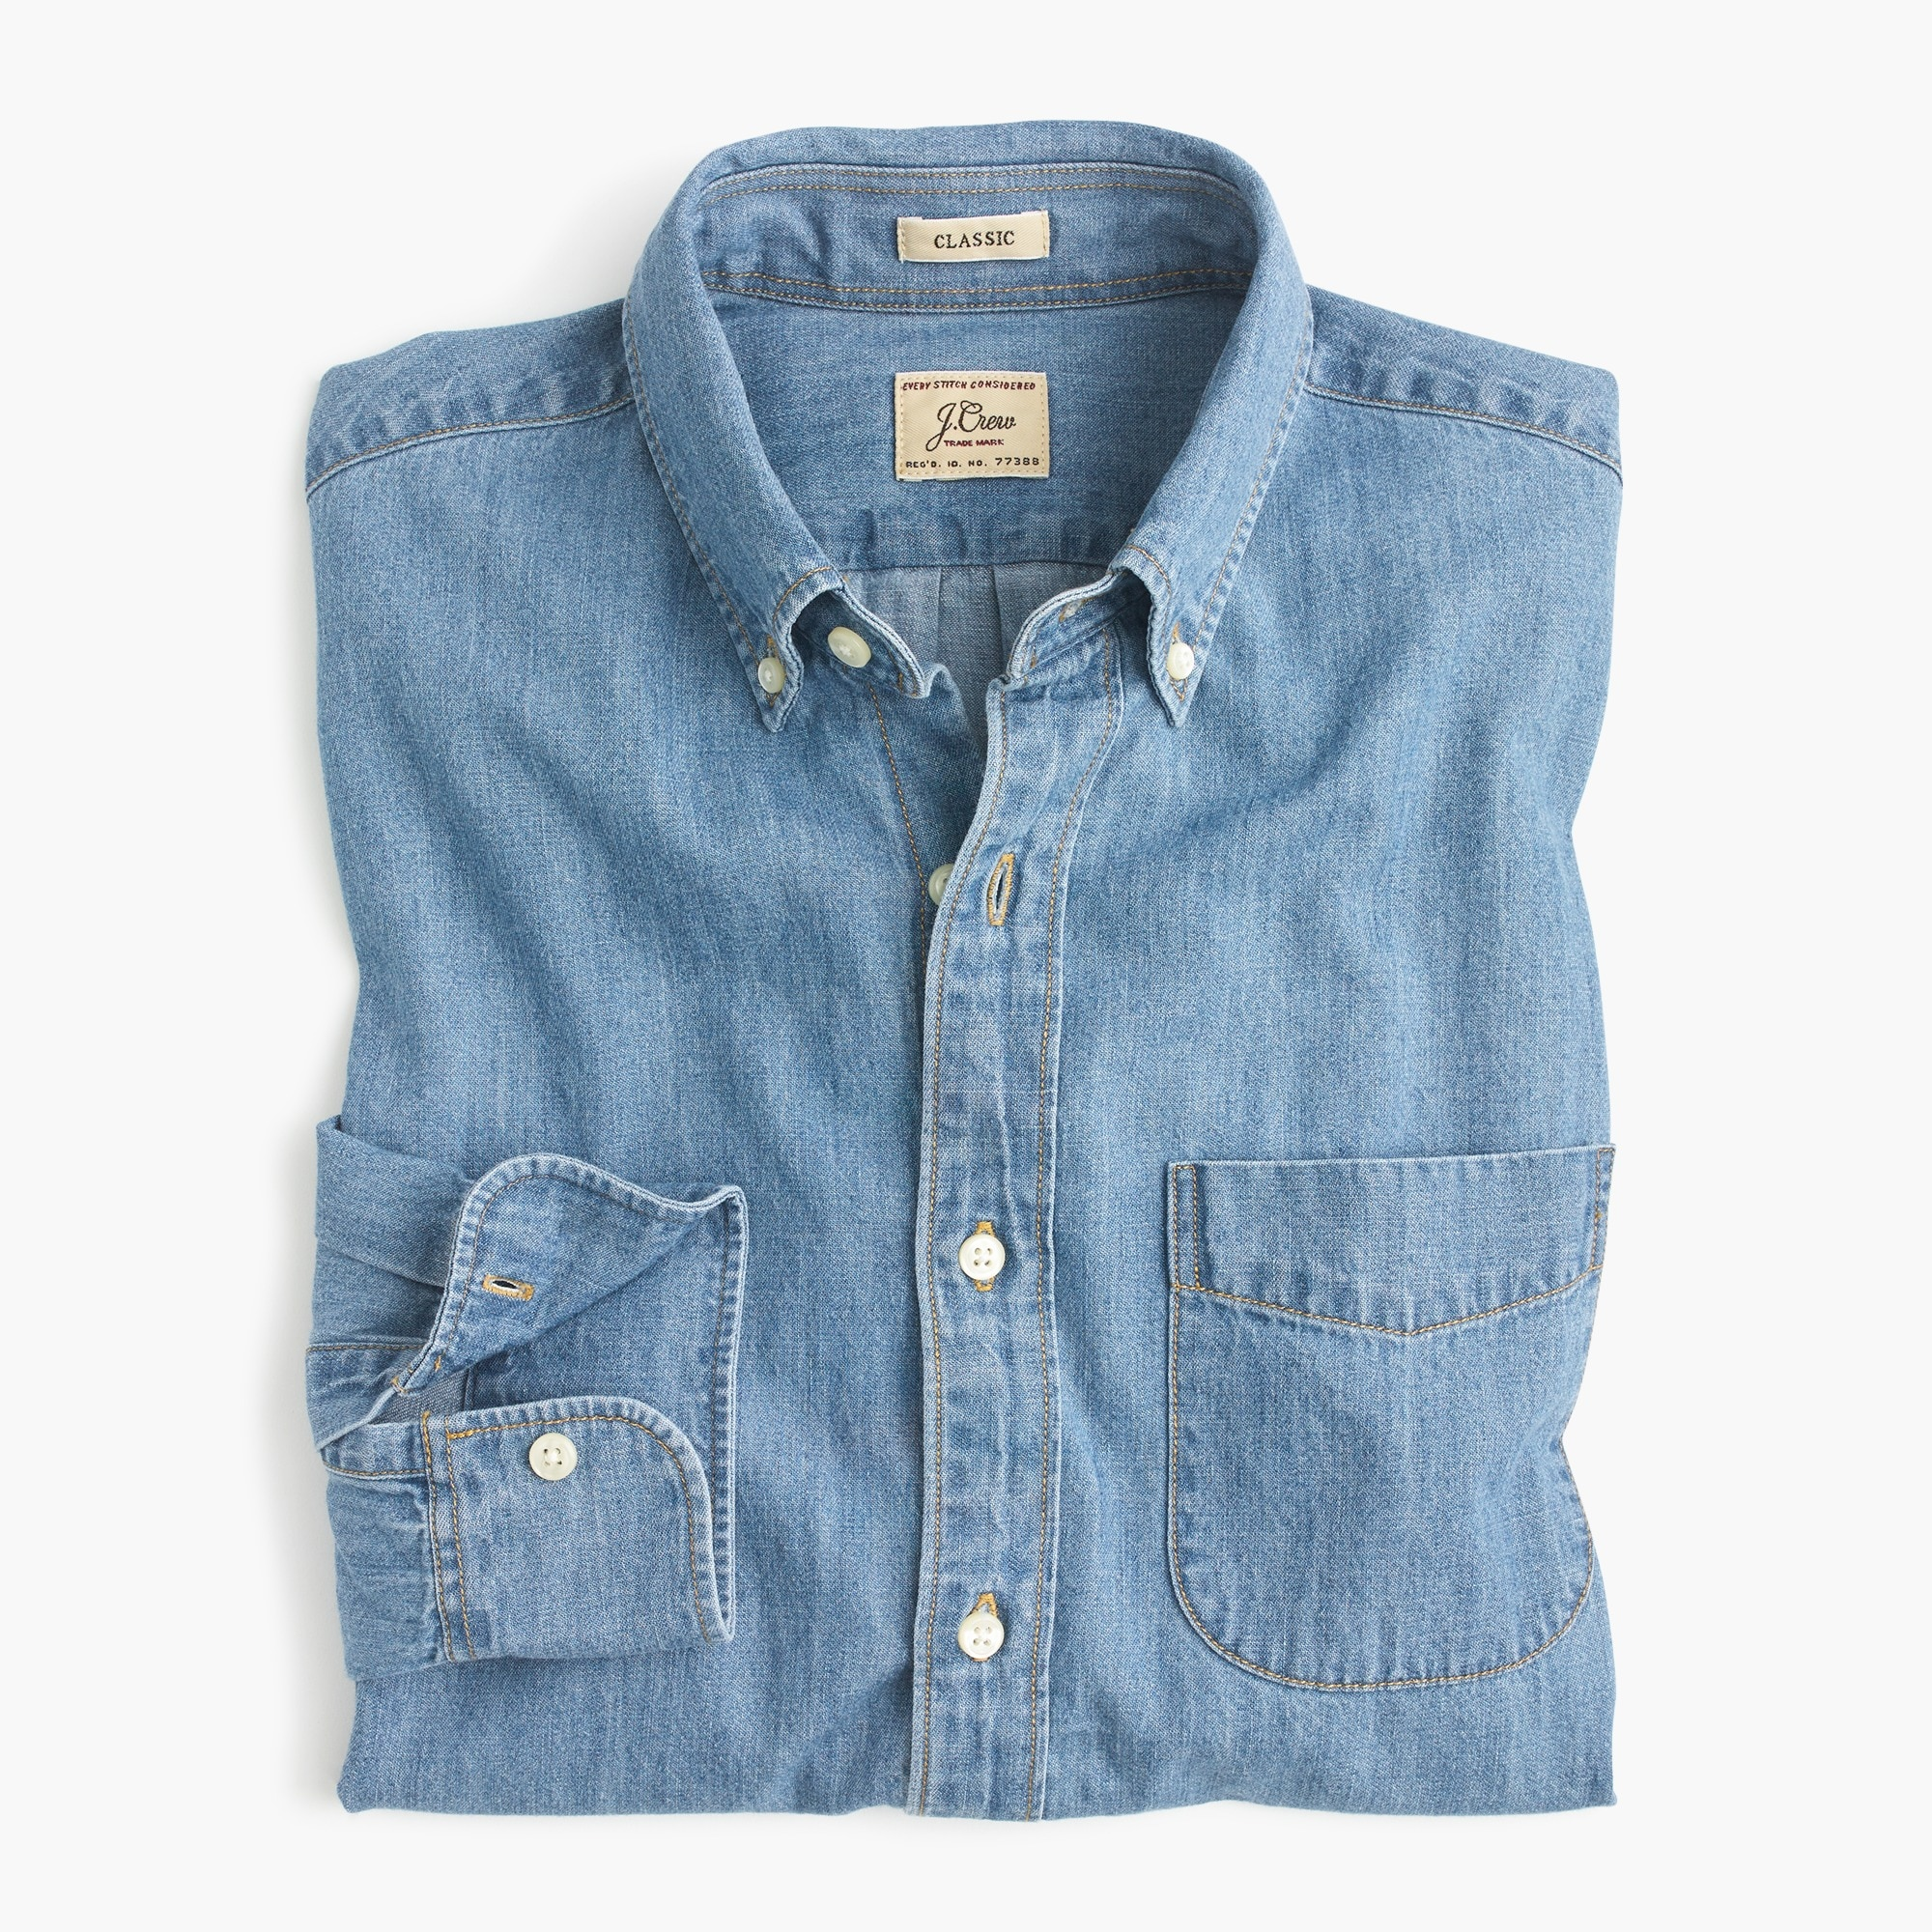 mens Slim lightweight denim shirt in light wash